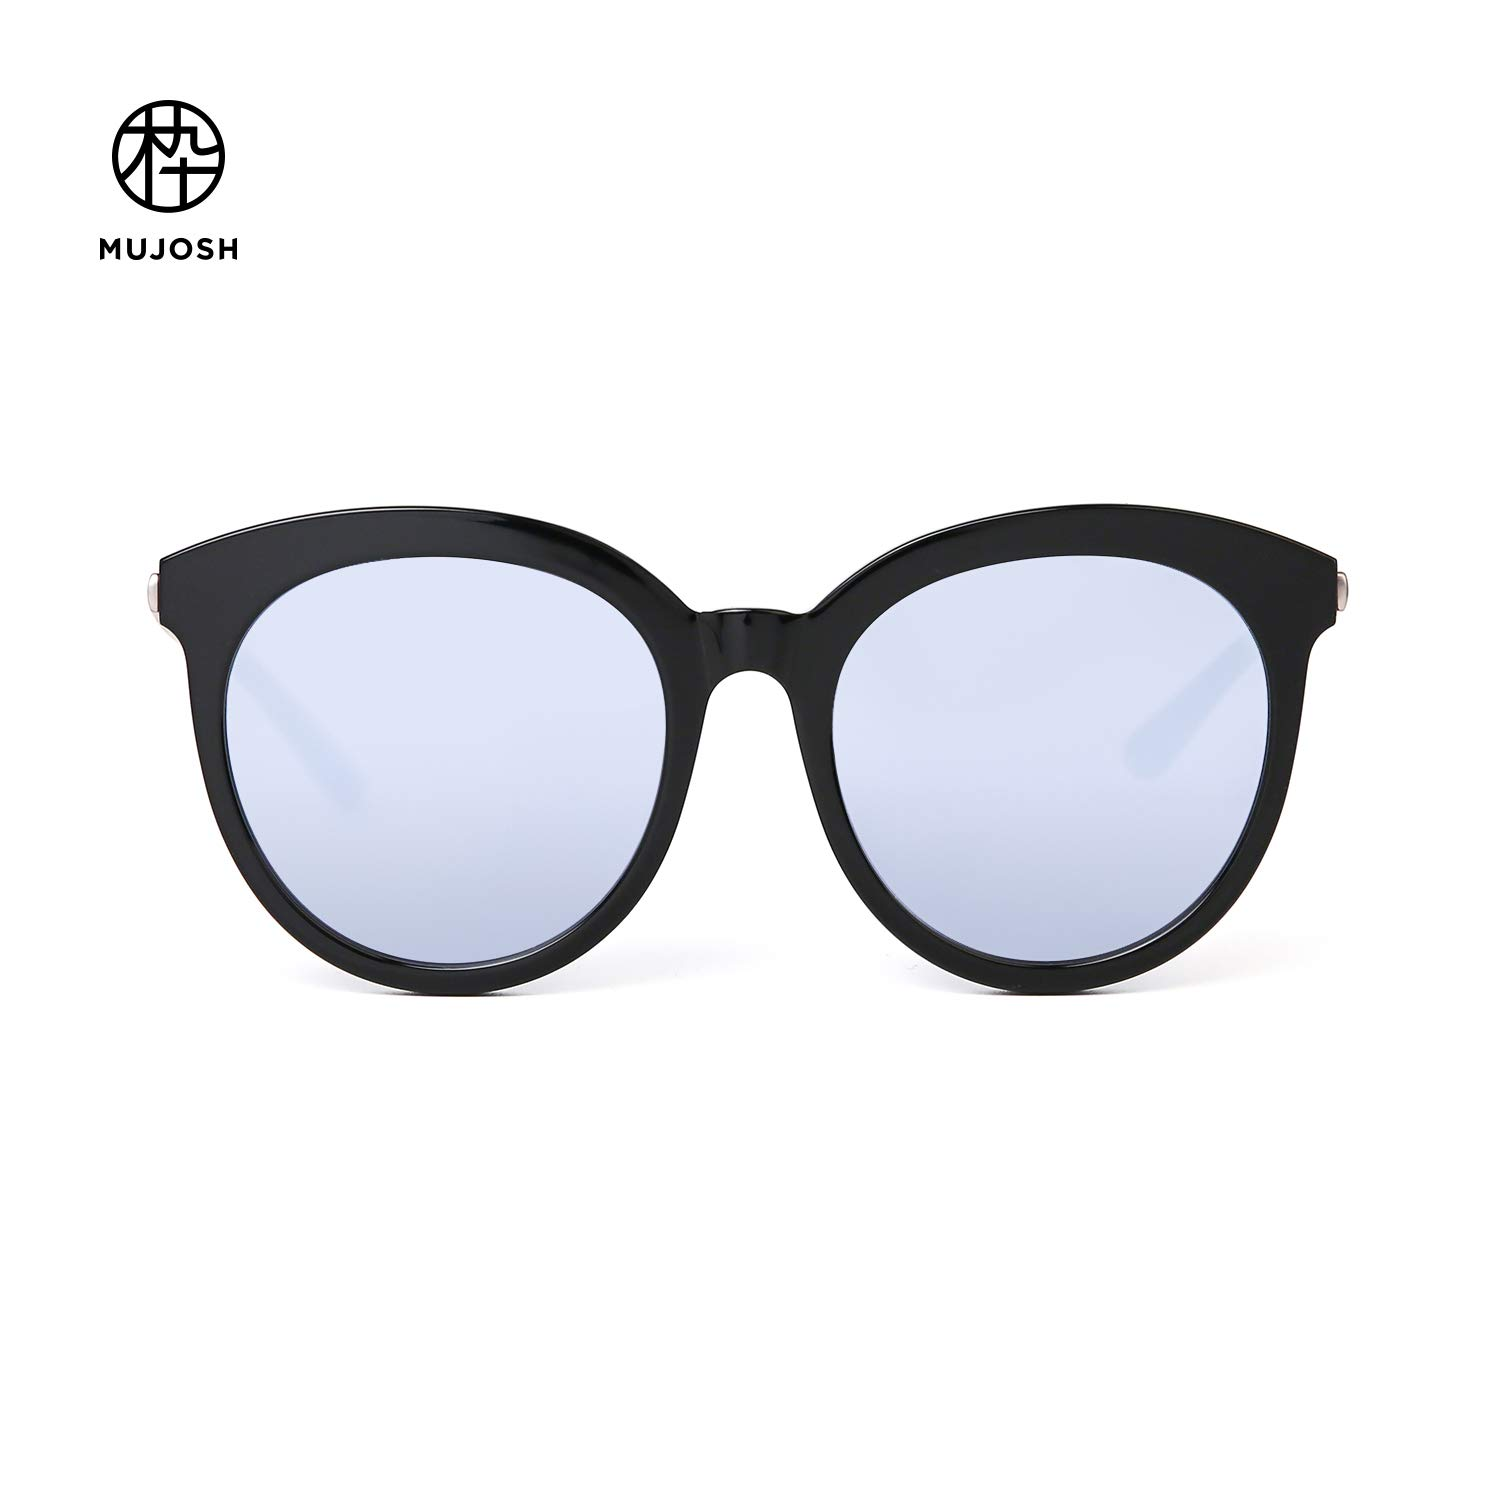 8d43e0281b Amazon.com  MUJOSH Mirrored Round UV Protection Retro Sunglasses for Women